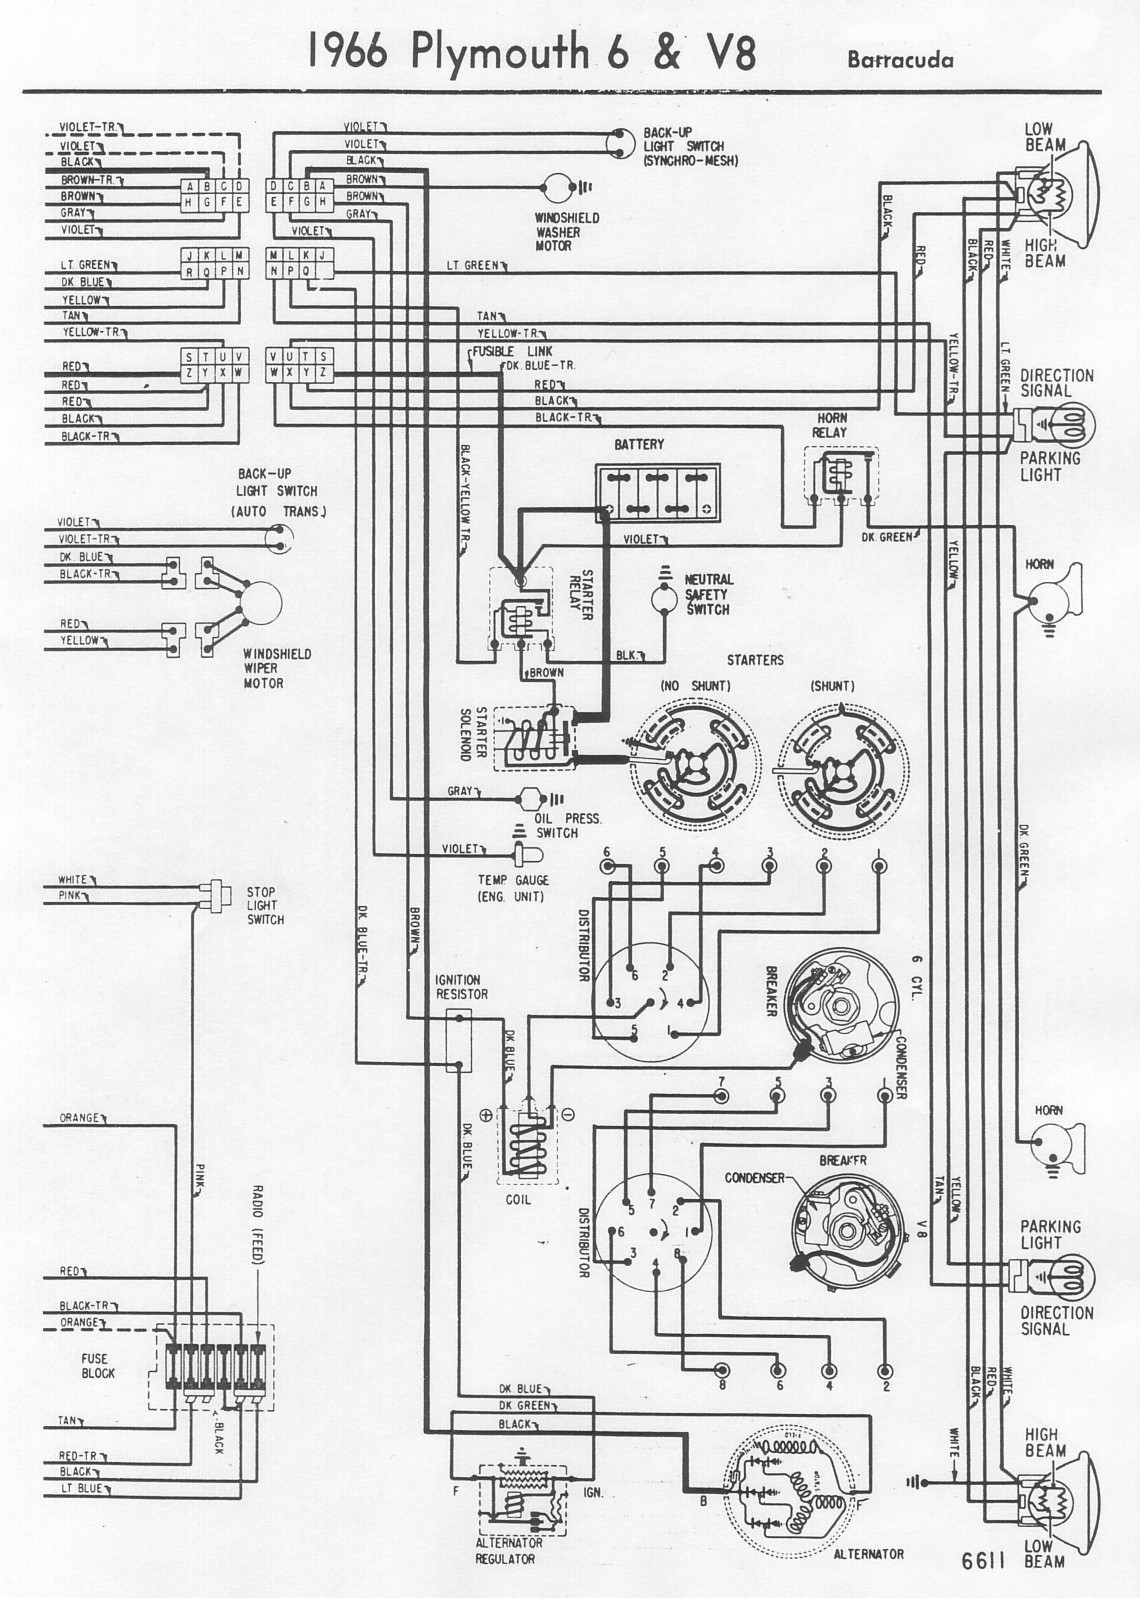 WiringDiagrams on 1966 dodge coronet wiring diagram